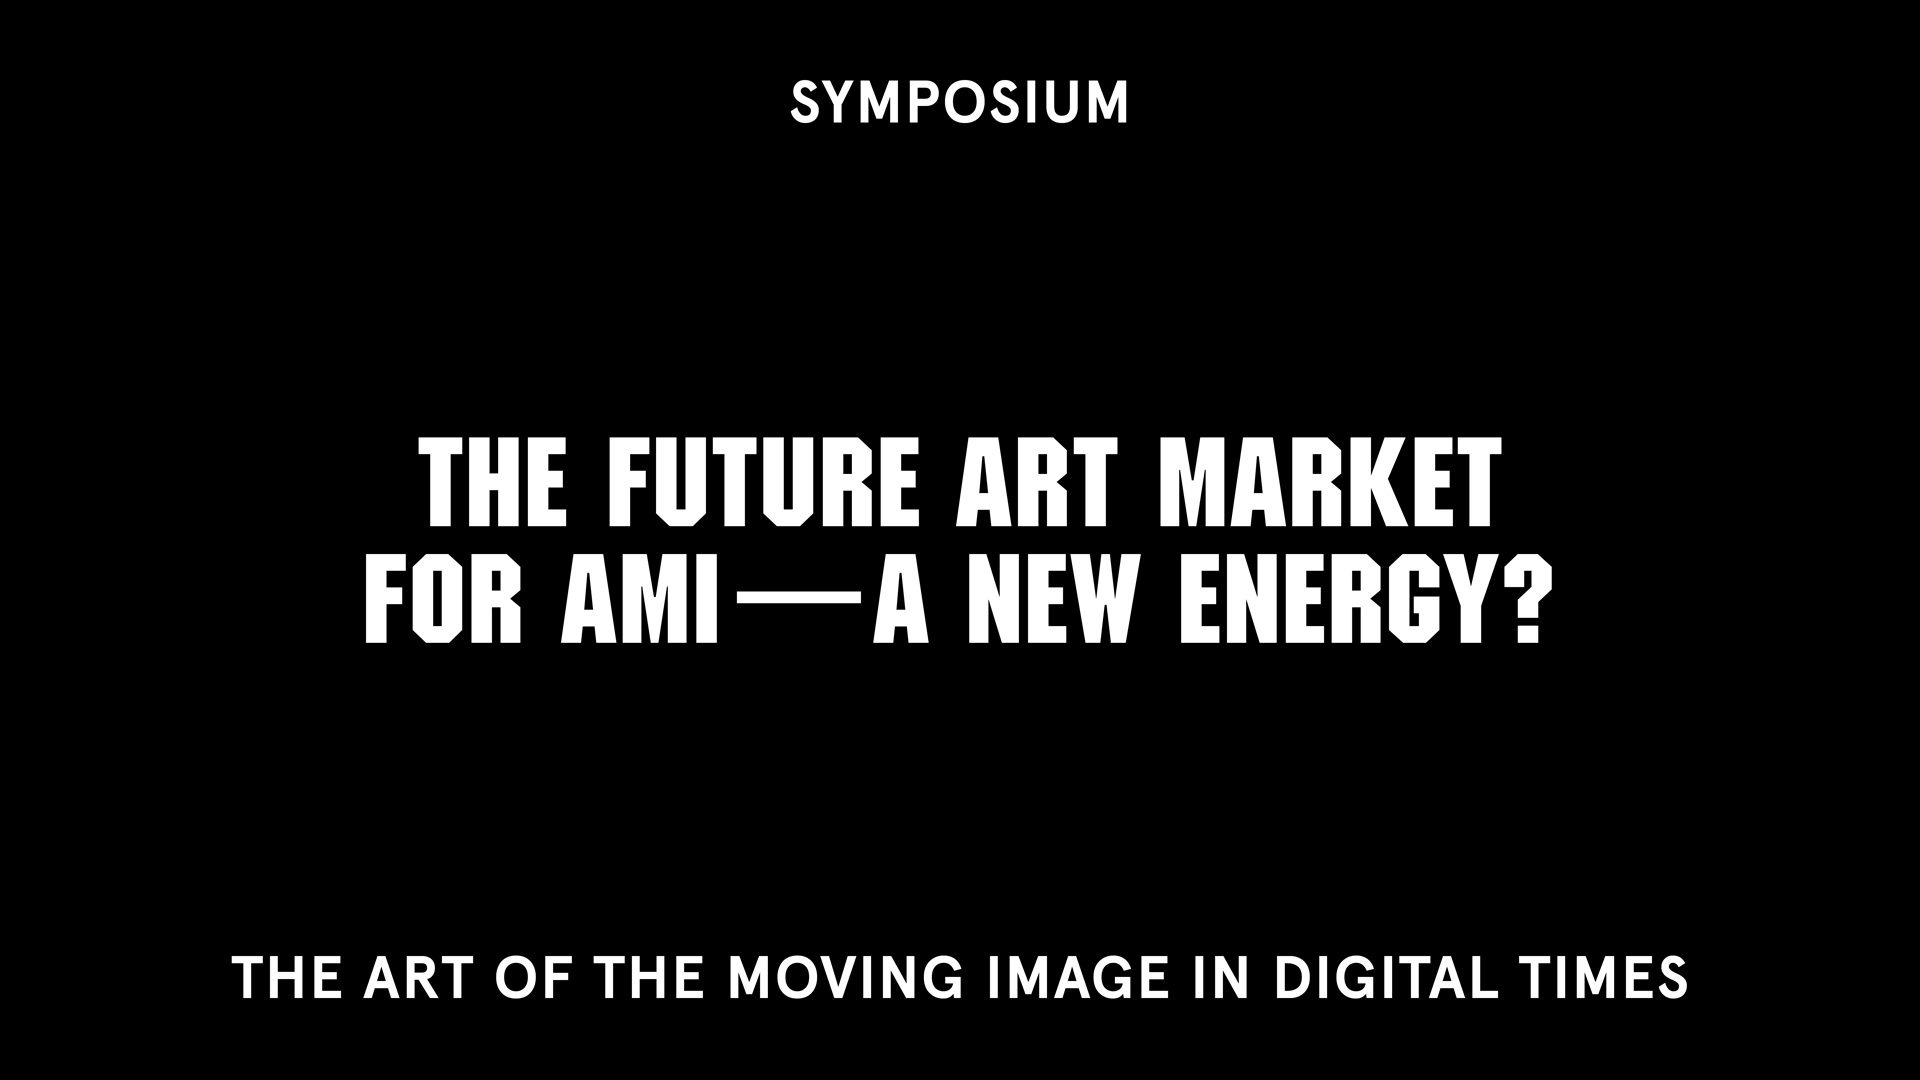 Symposium II The Future Art Market - For Ami - A new energy